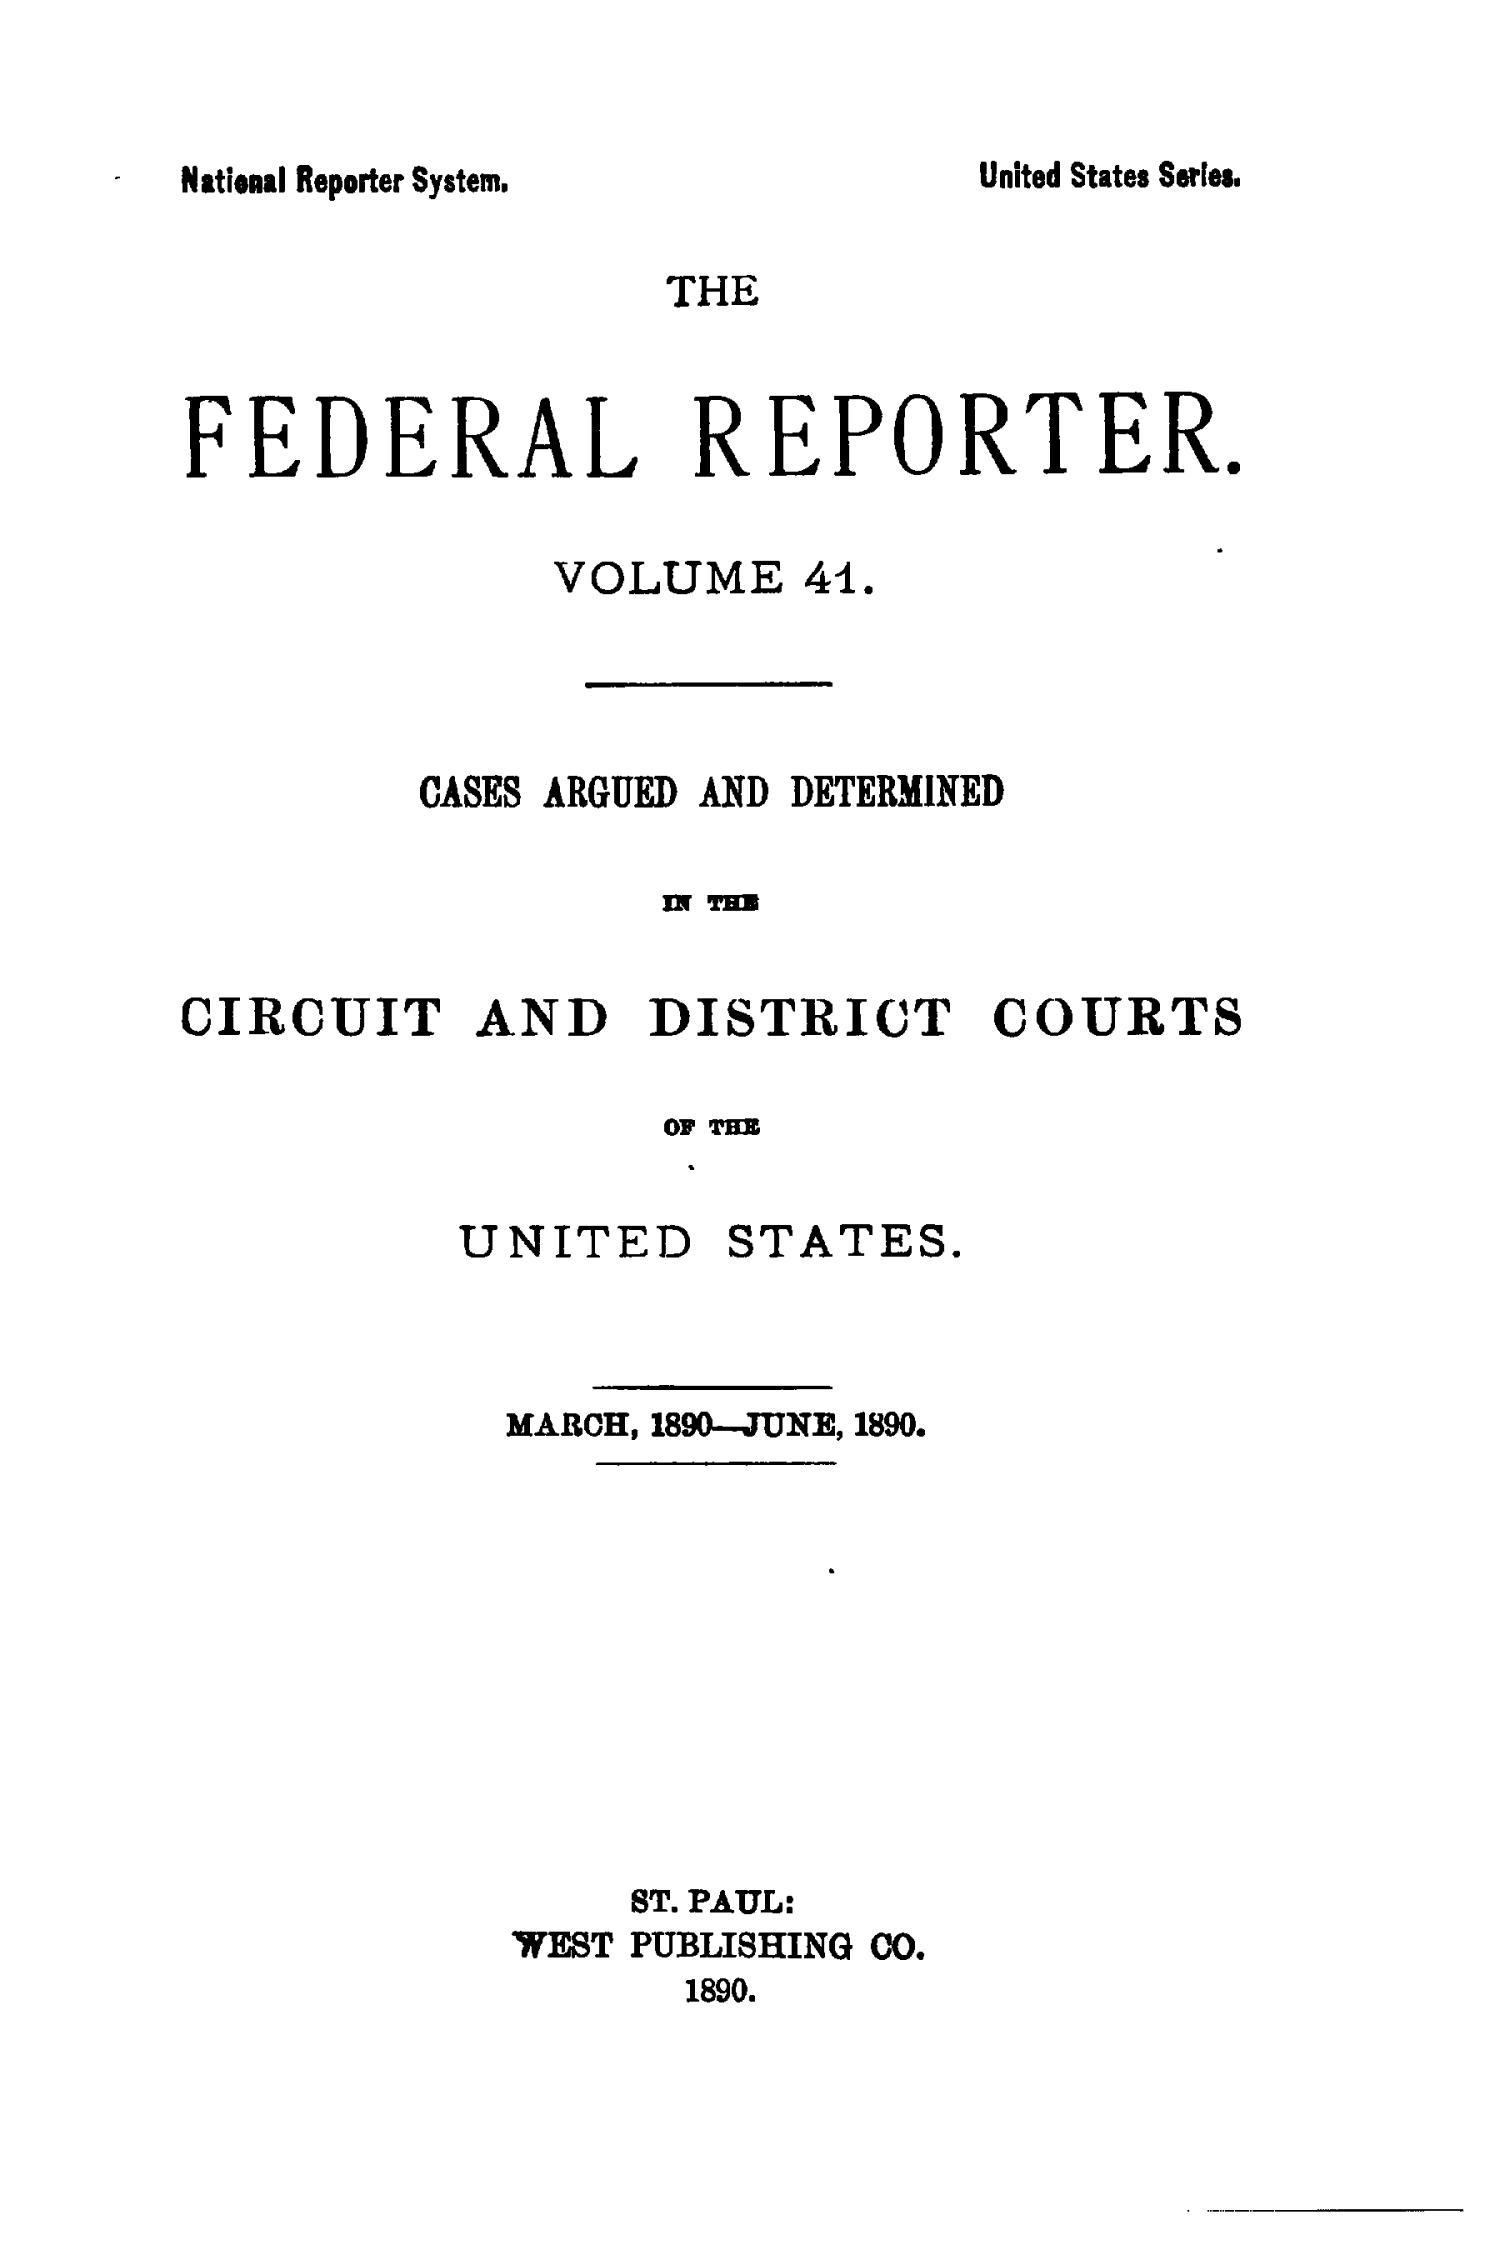 The Federal Reporter. Volume 41: Cases Argued and Determined in the Circuit and District Courts of the United States. March-June, 1890.                                                                                                      Title Page